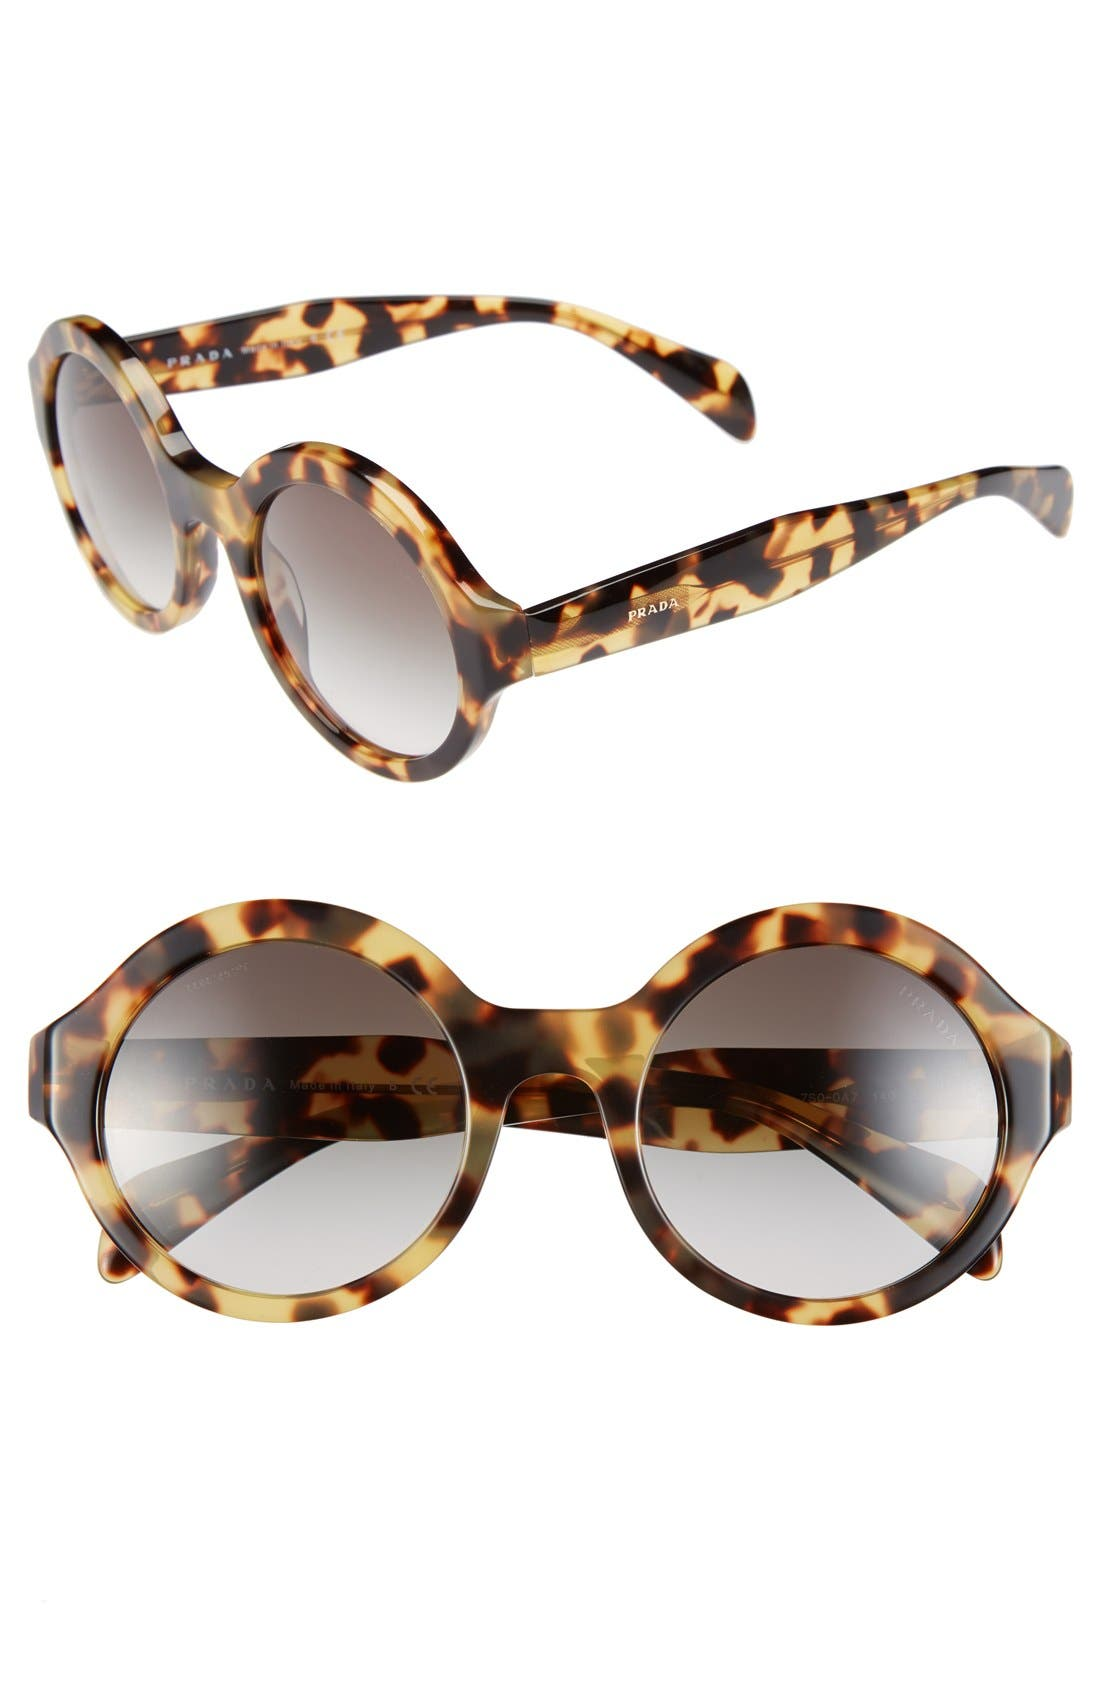 Main Image - Prada 51mm Round Sunglasses